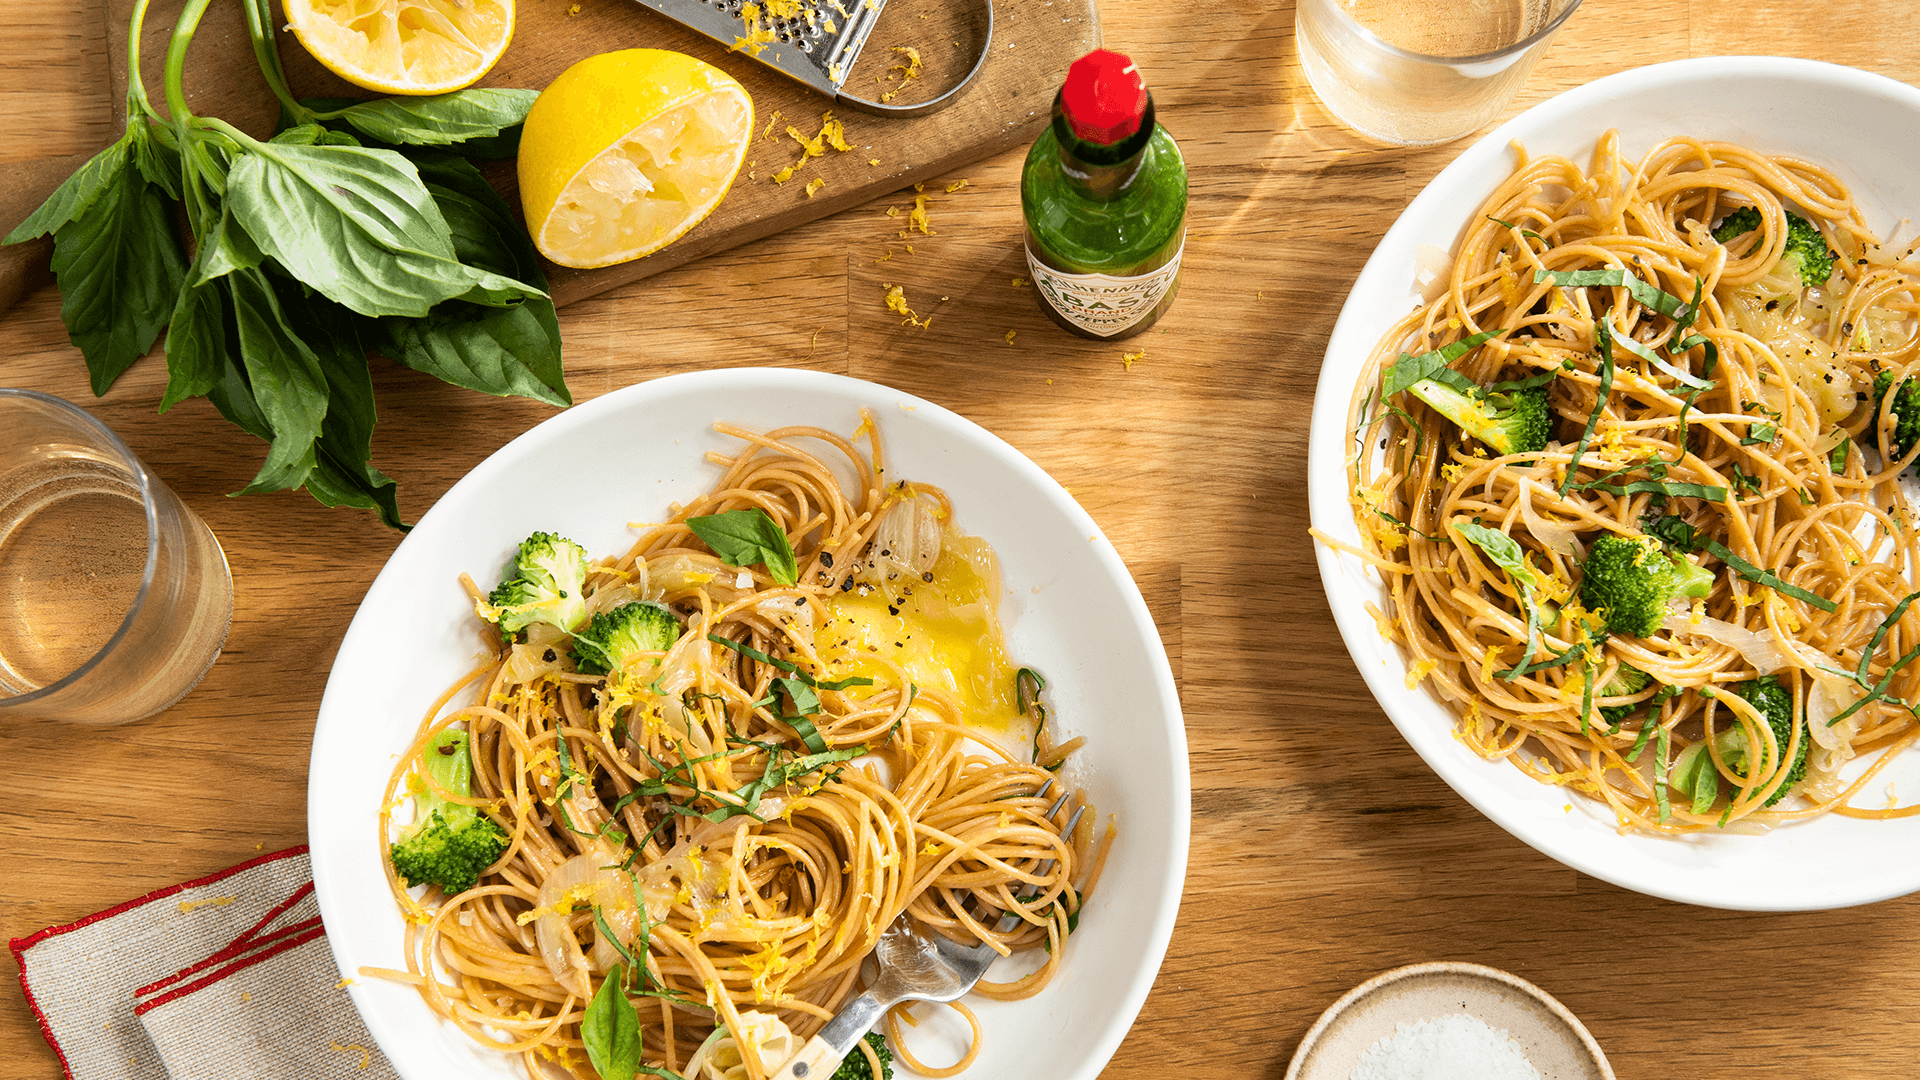 Spicy Whole Wheat Pasta with Broccoli and Lemon